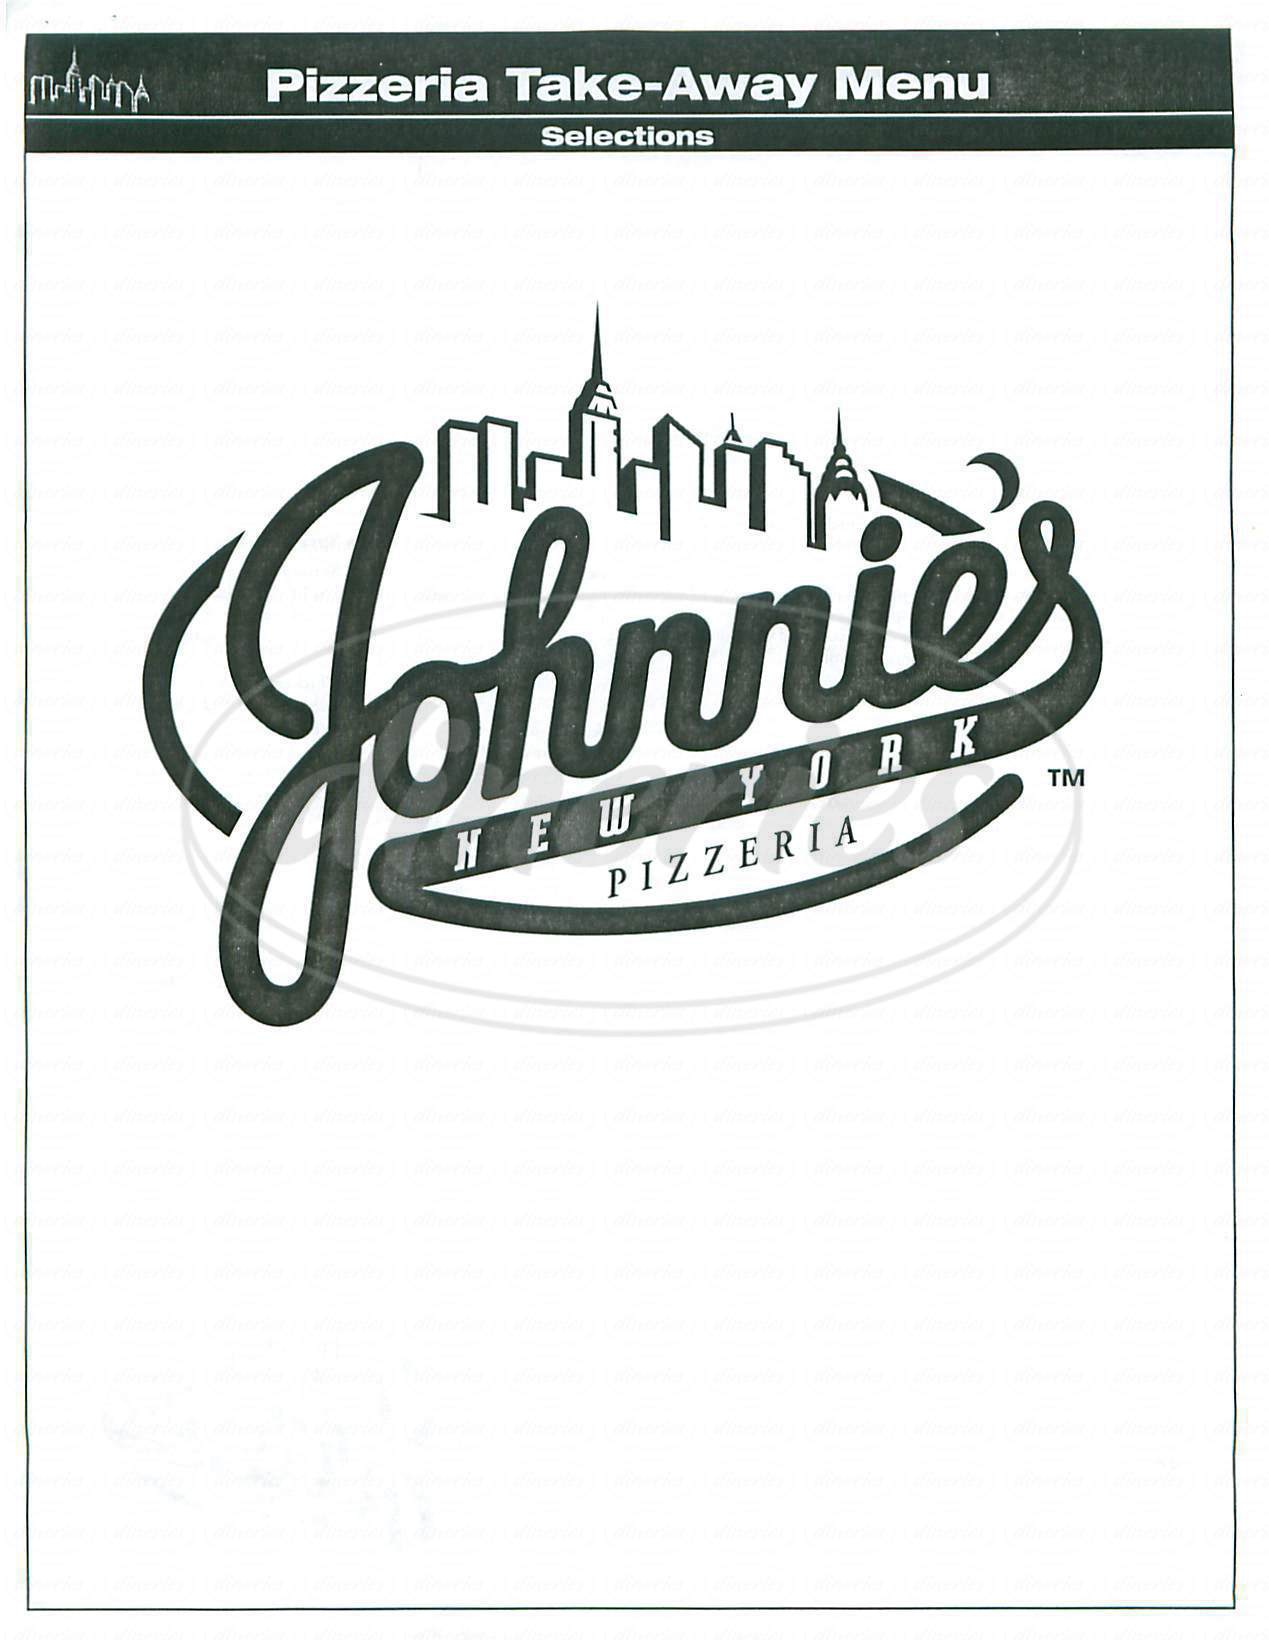 menu for Johnnies New York Pizzeria